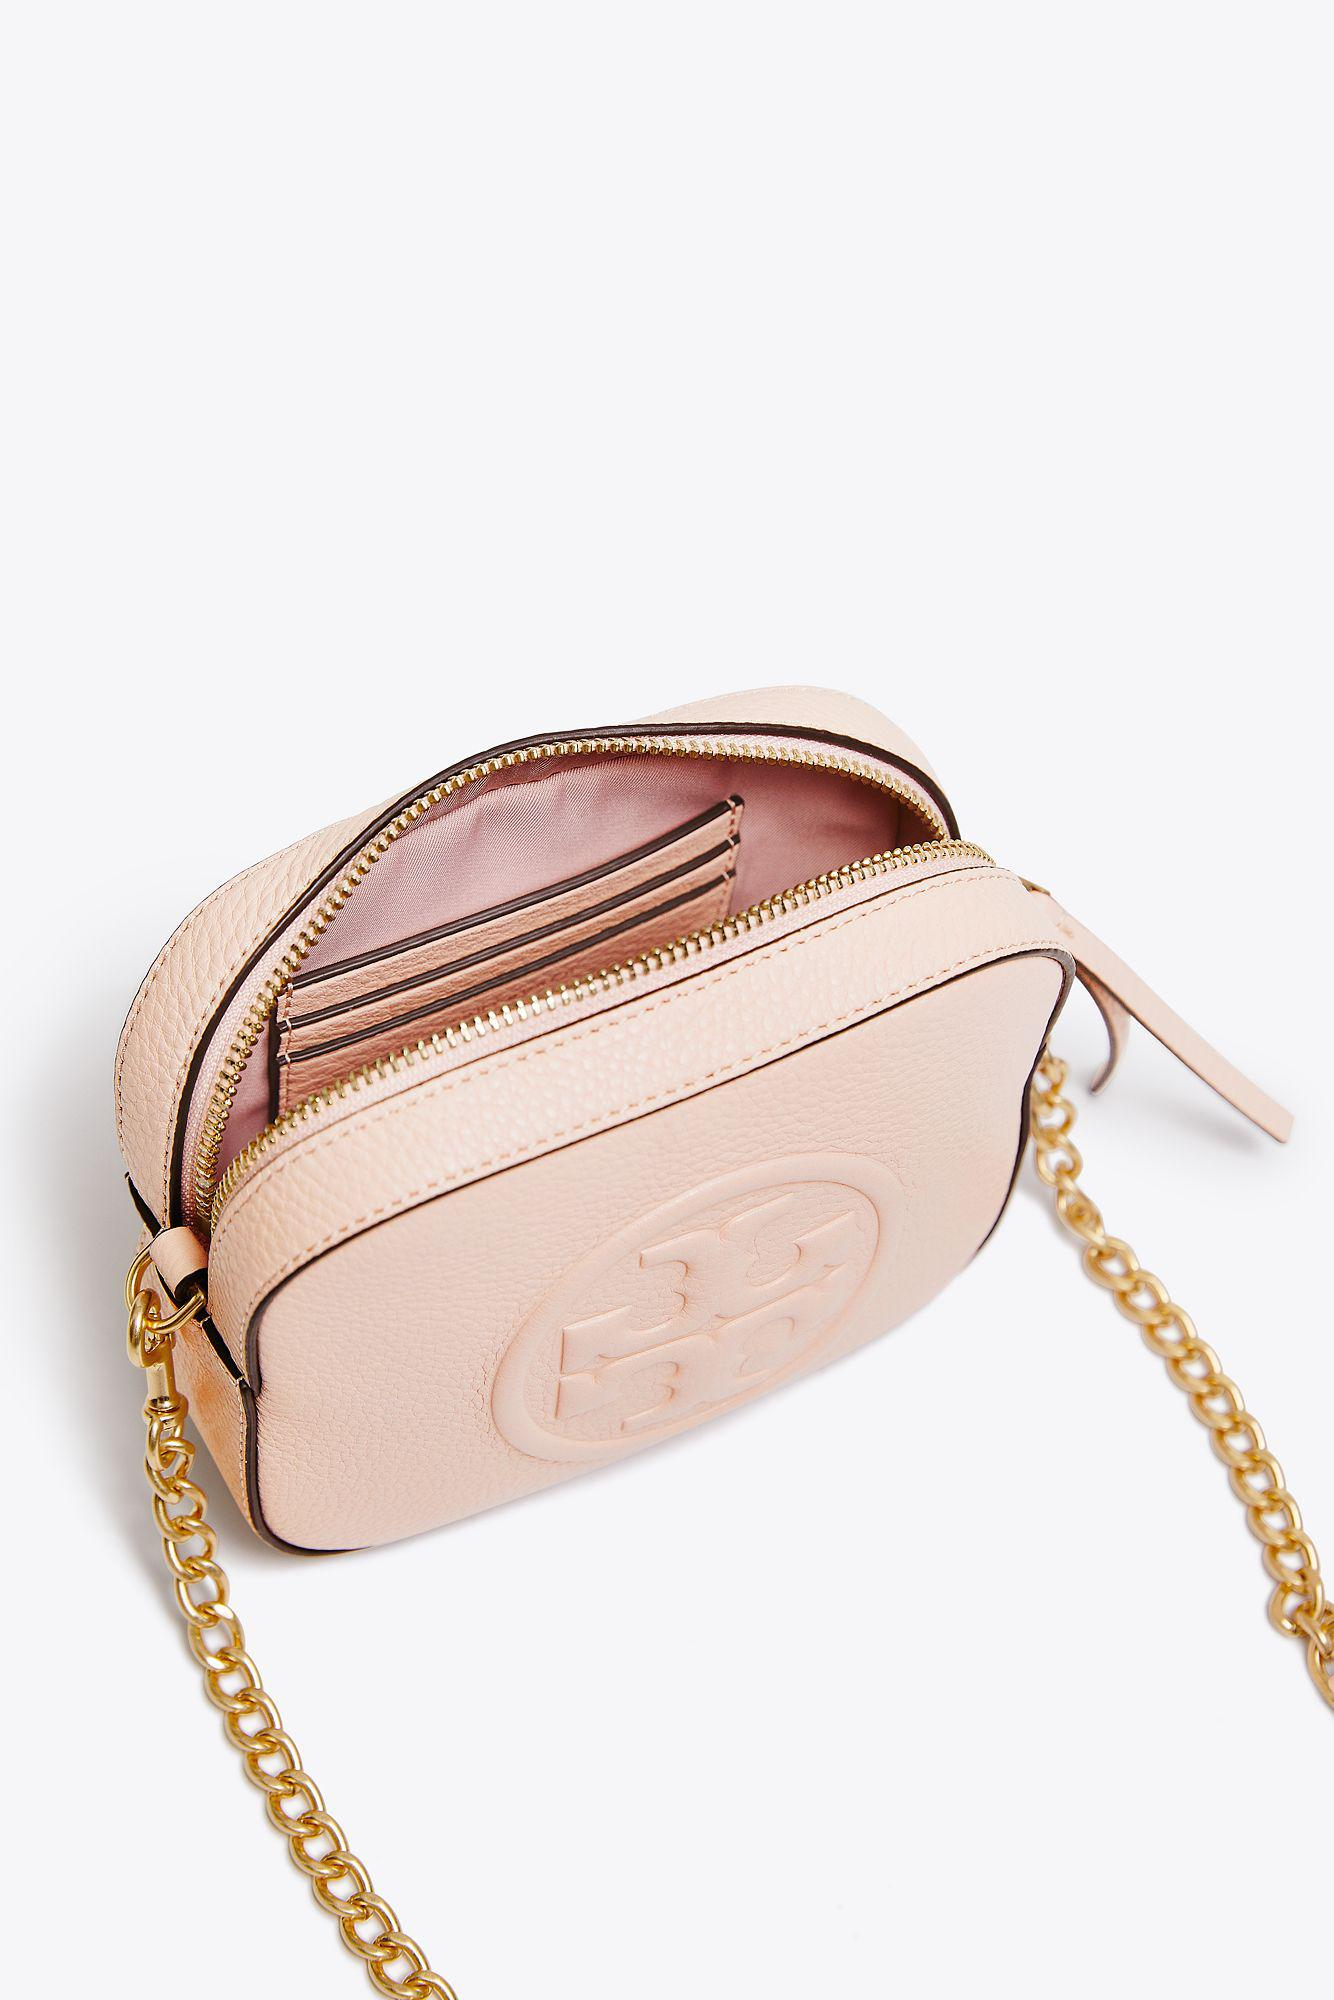 141c6001445 Lyst - Tory Burch Limited-edition Mini Cross-body in Pink